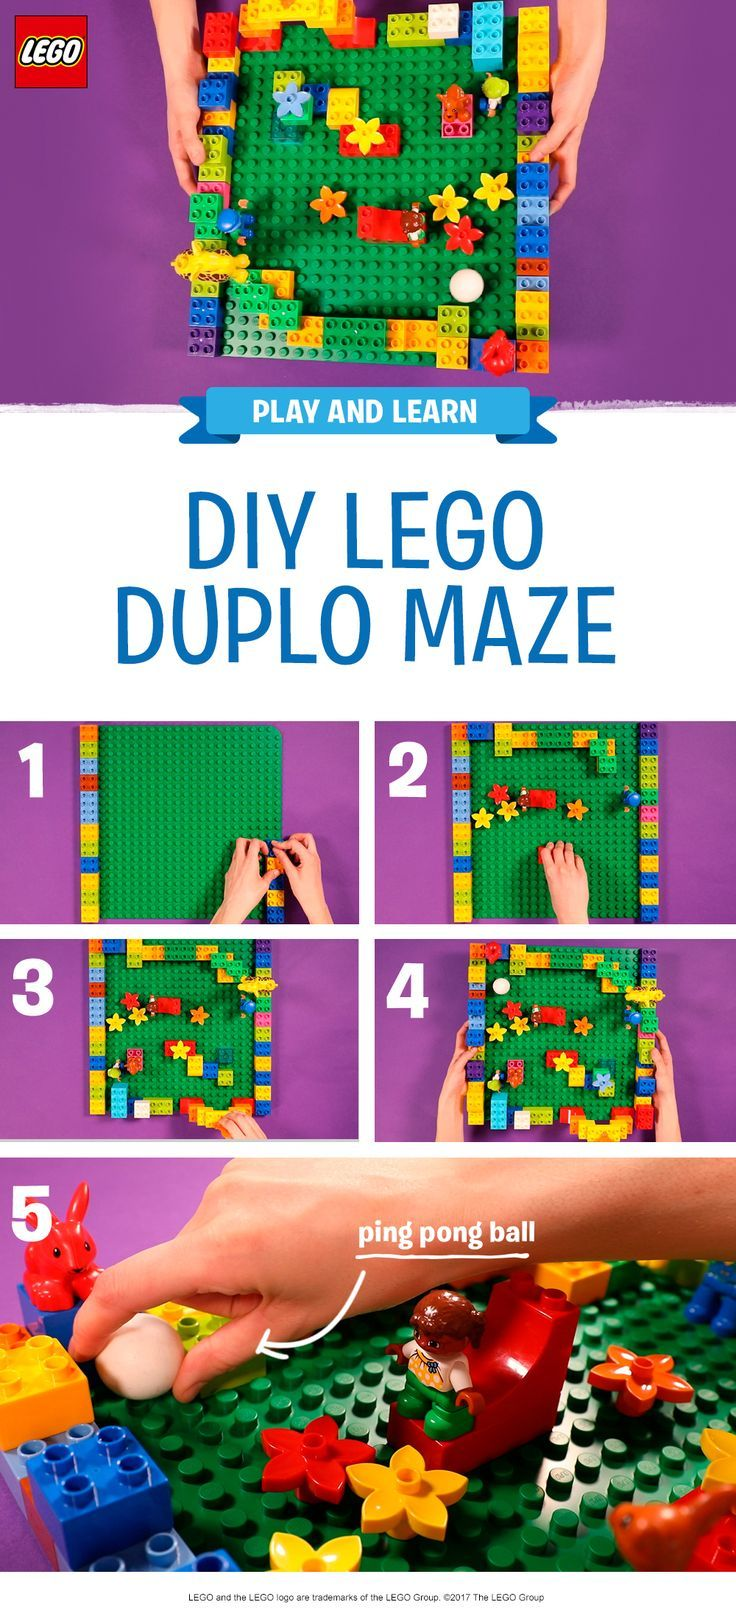 All you and your little one need to create this fun maze